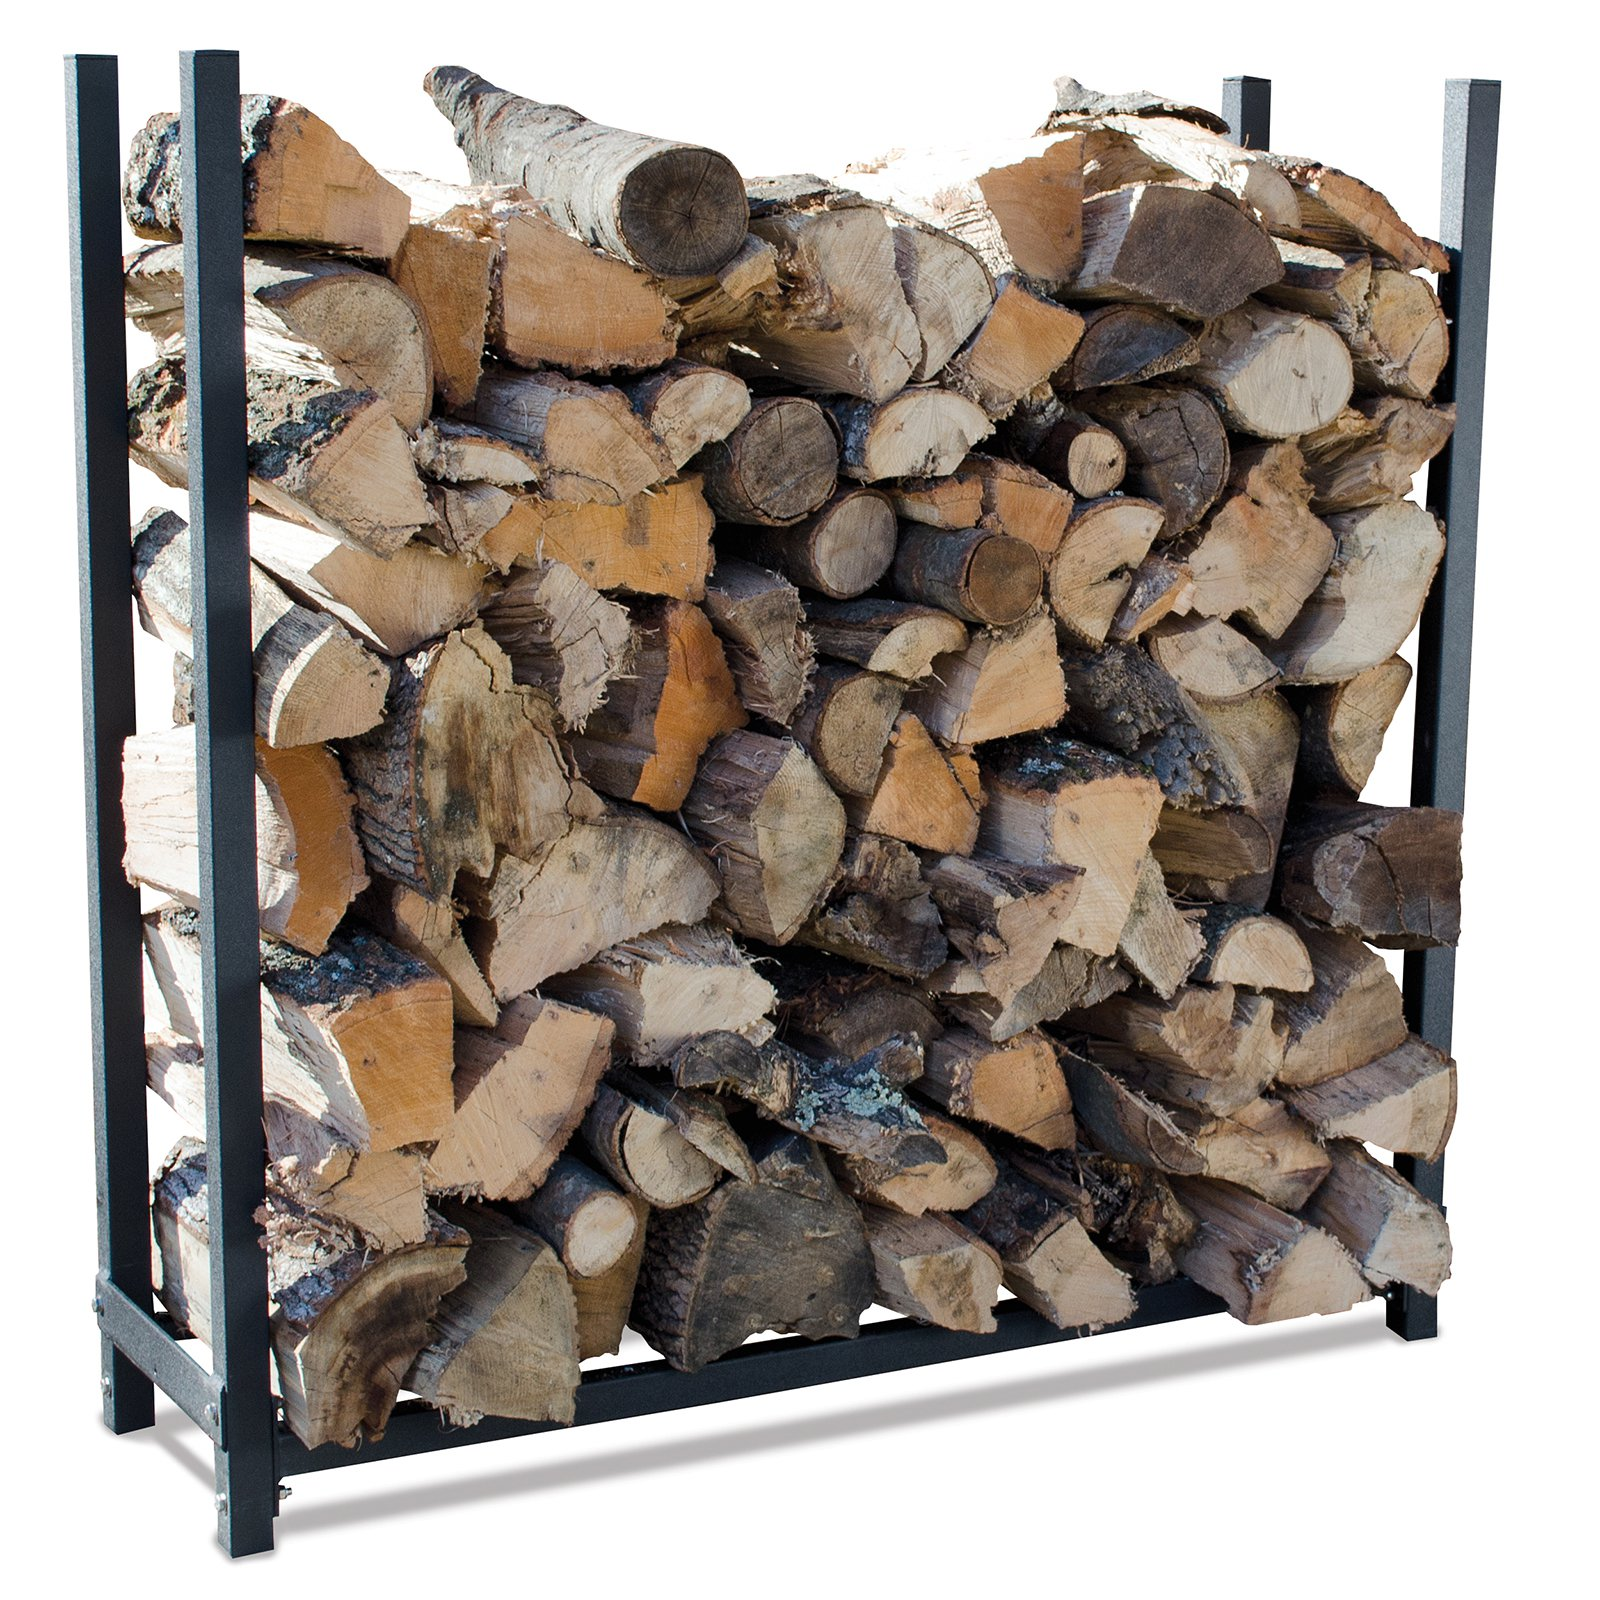 Uniflame 4 Ft. Premium Log Rack